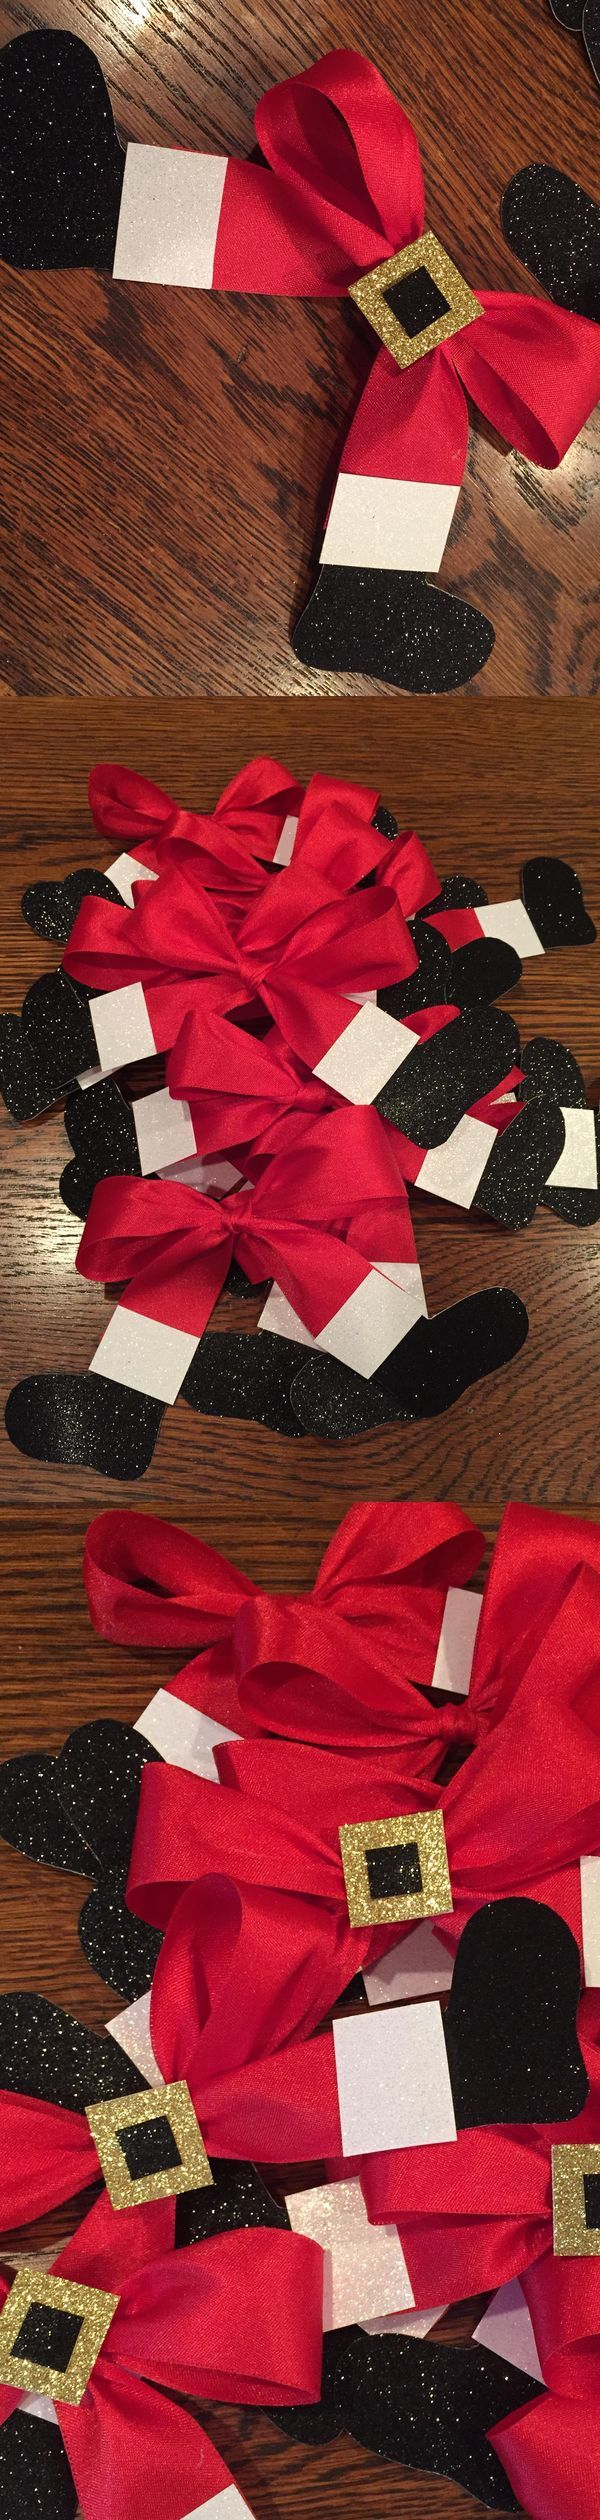 Christmas party buffet table decorations - Santa Bows Love These To Top Presents And For Table Place Cards